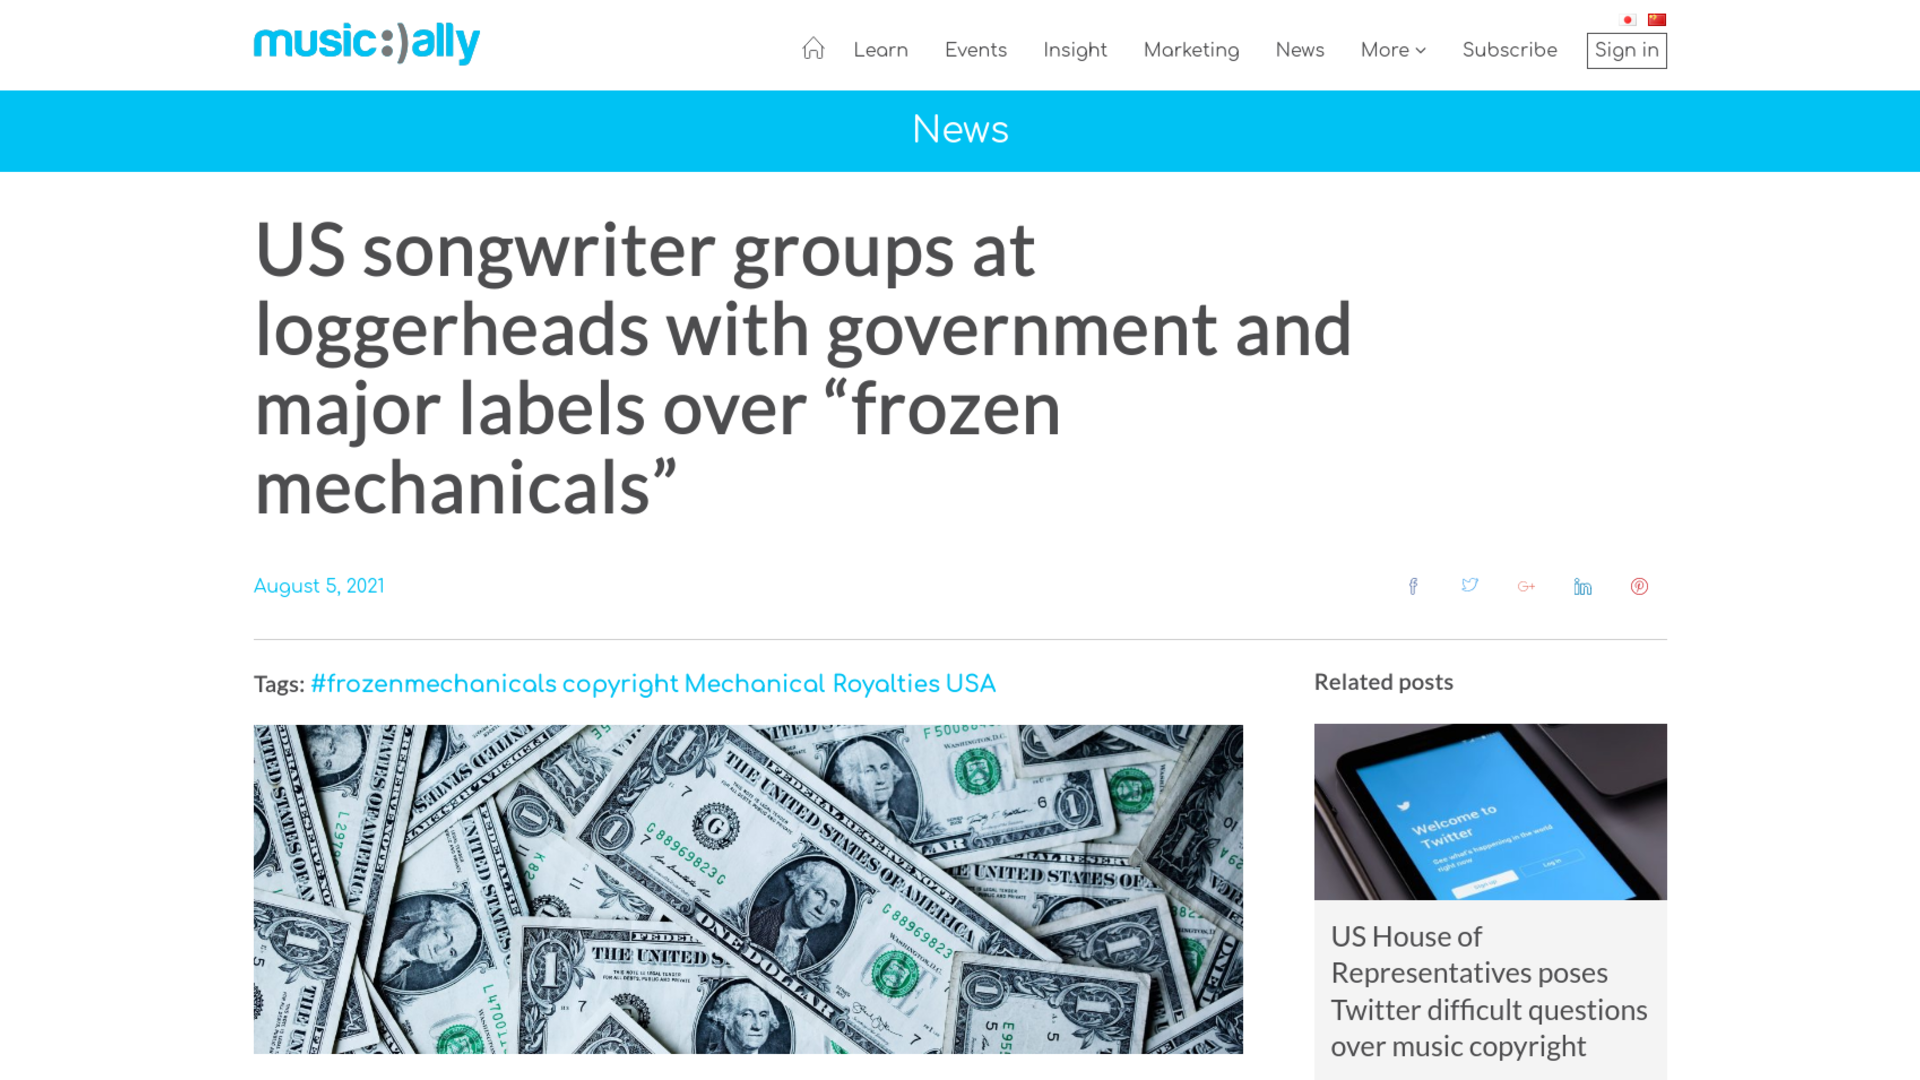 """Fairness Rocks News US songwriter groups at loggerheads with government and major labels over """"frozen mechanicals"""""""